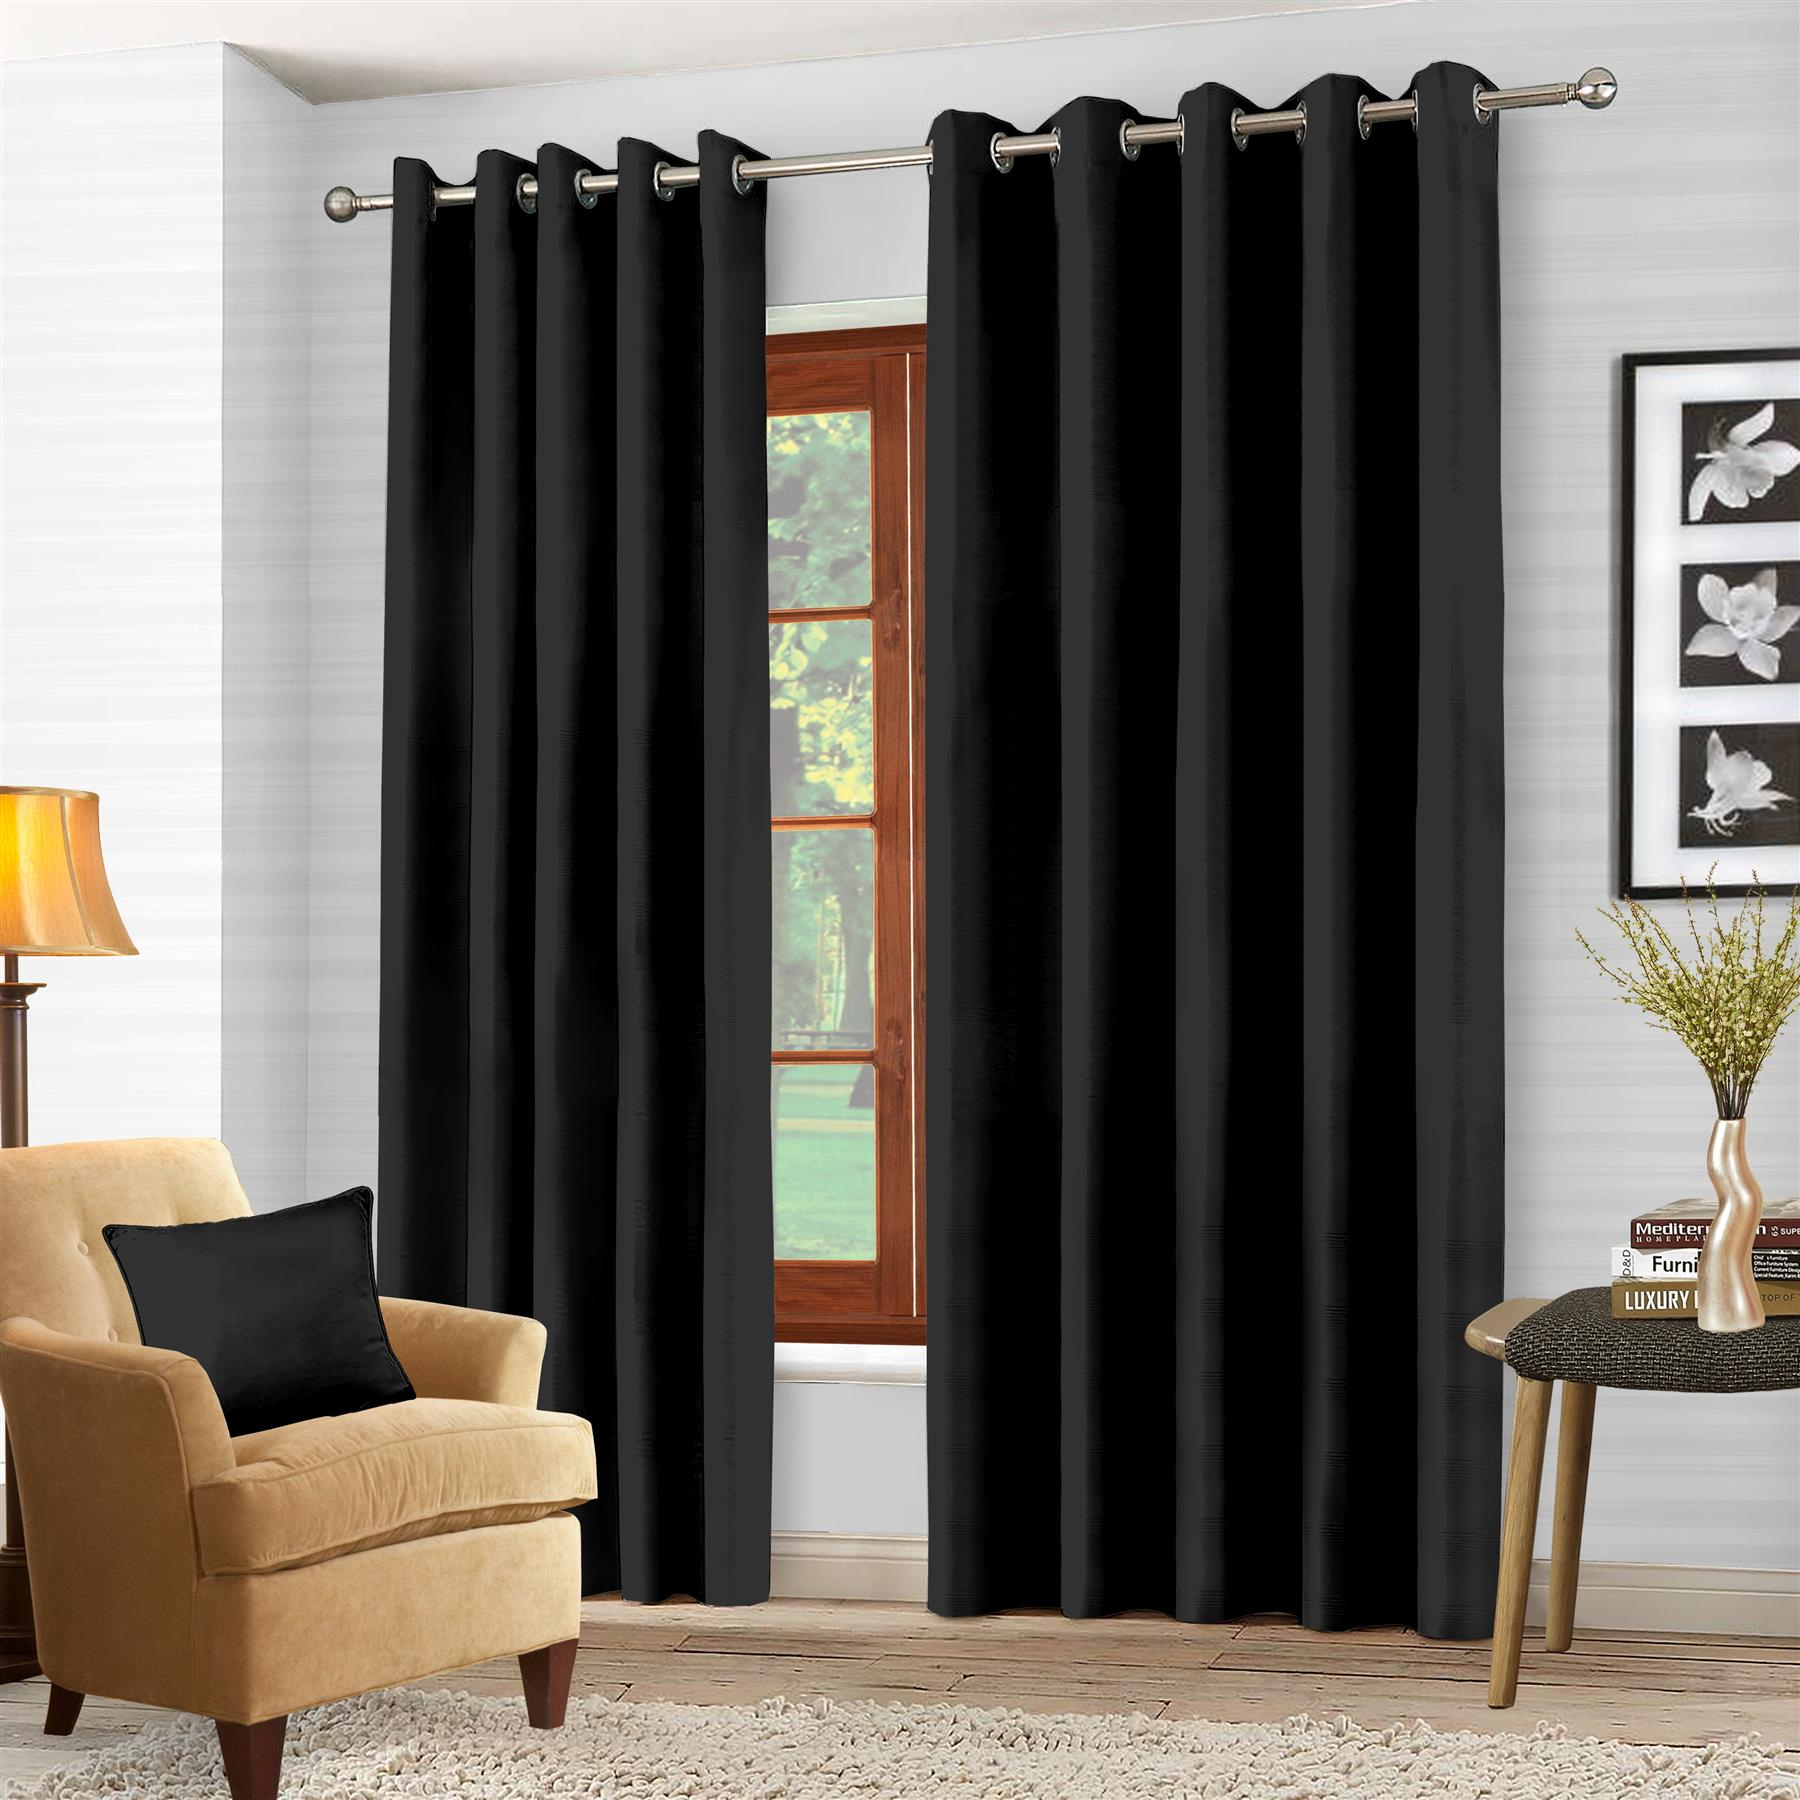 Luxury-Thermal-Blackout-Eyelet-Ring-Top-Curtains-Pair-with-tie-backs thumbnail 6